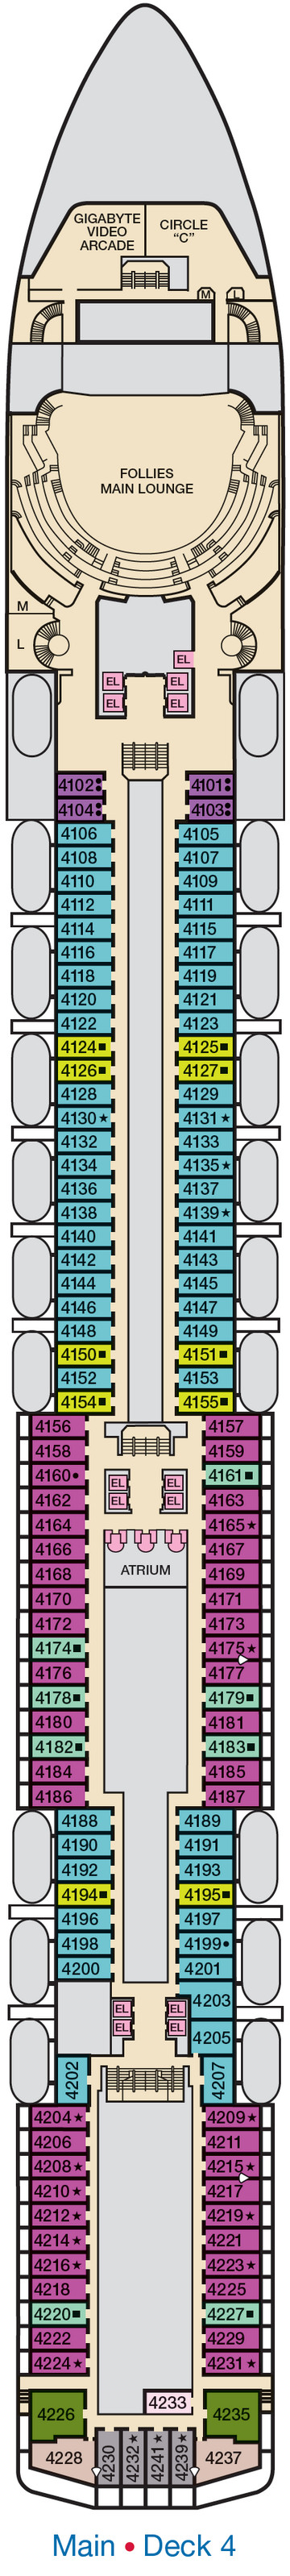 Carnival Legend Main Deck 4 layout